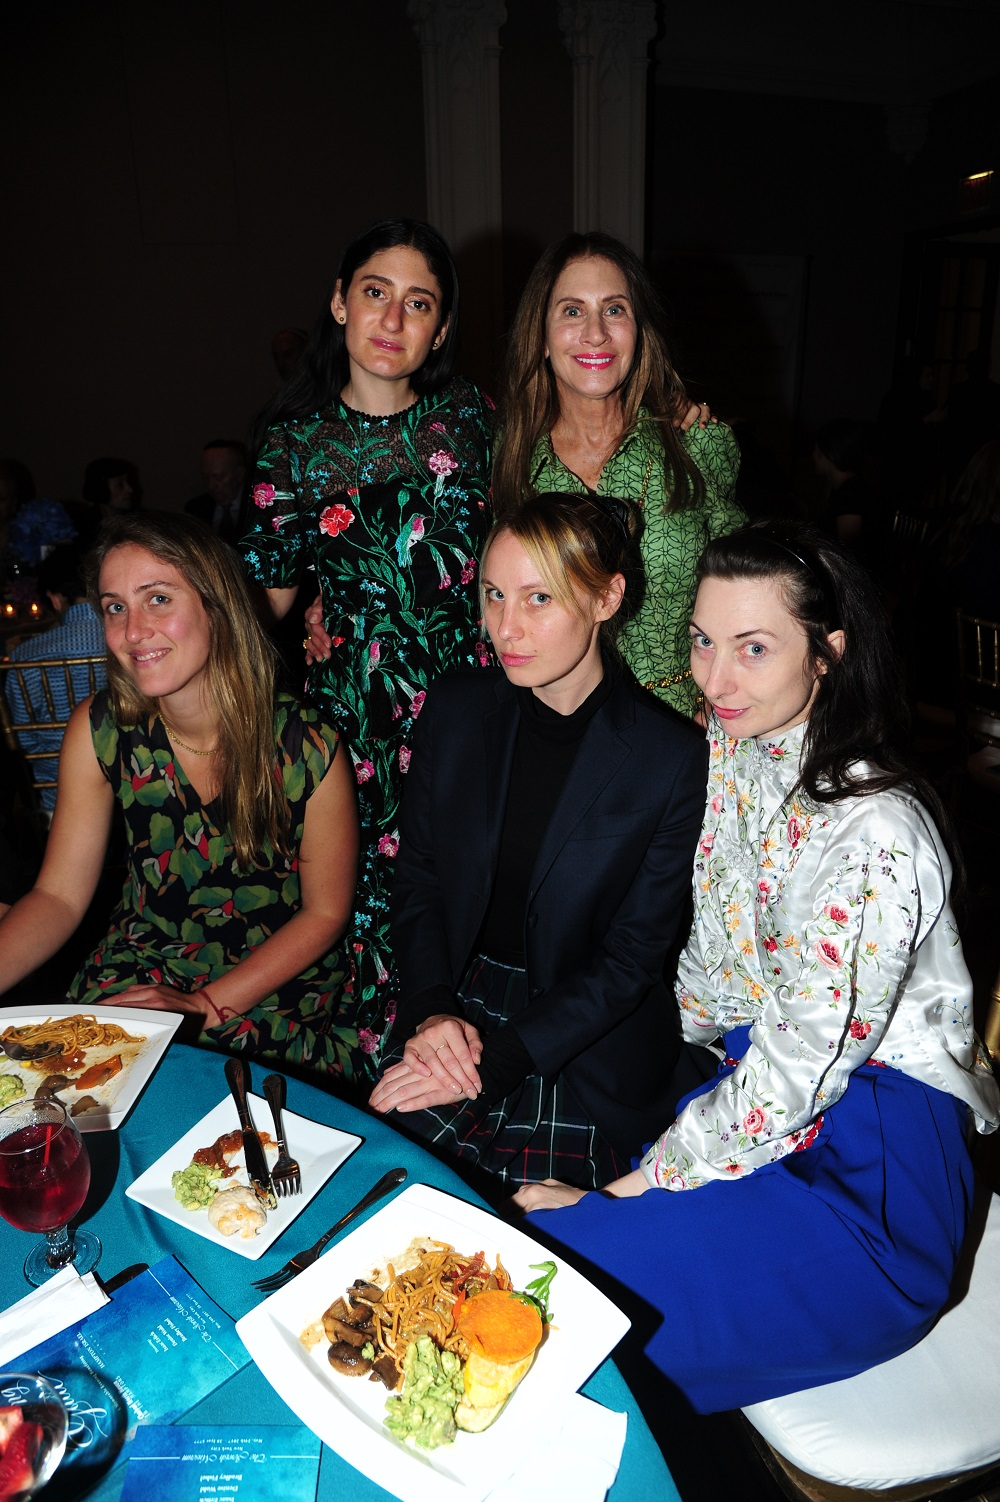 denise wohl arden and friends.jpg